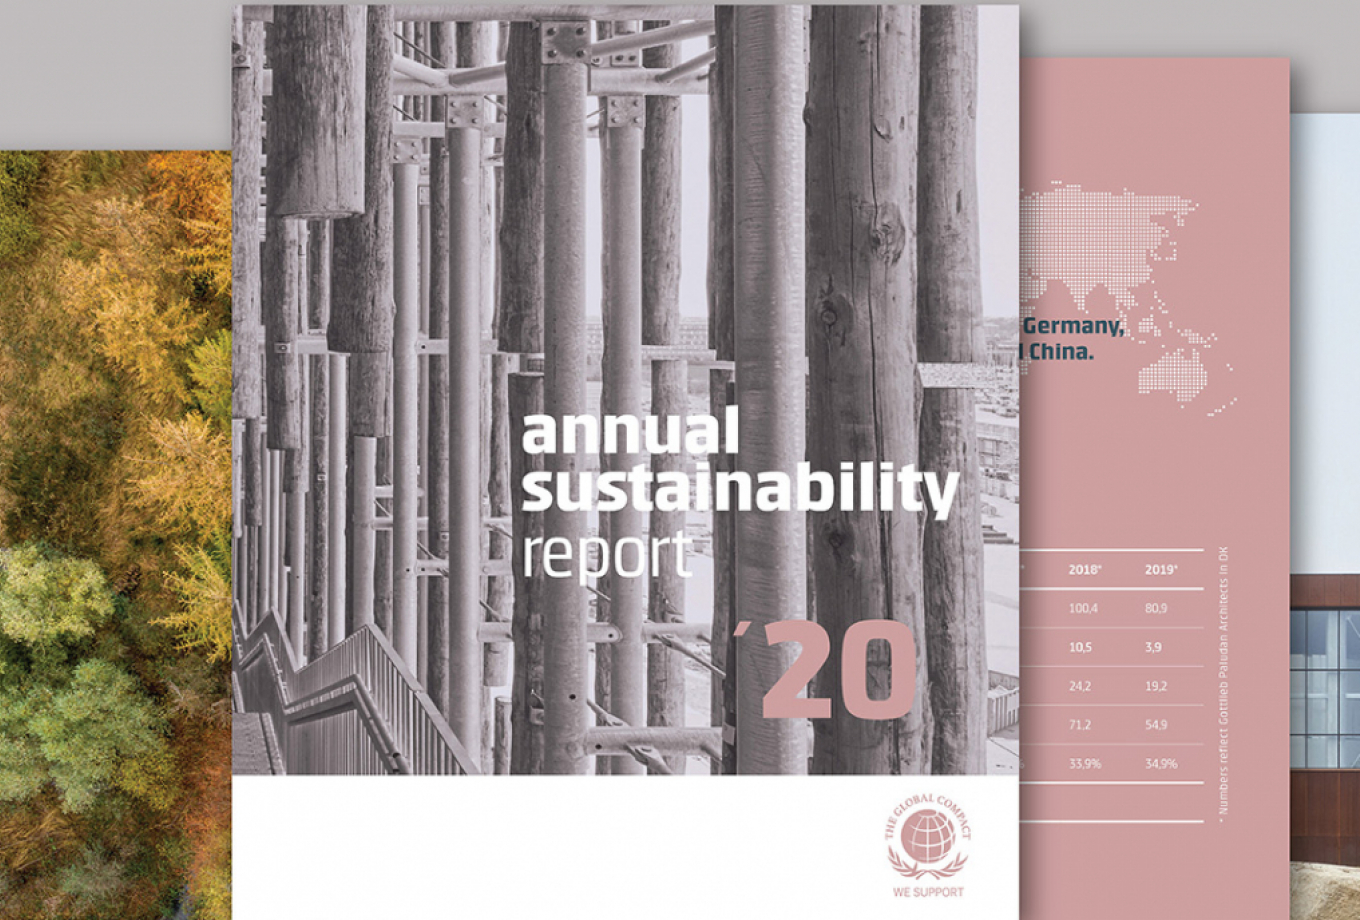 gottlieb_paludan_architects_annual_sustainability_report_cop_some_collage